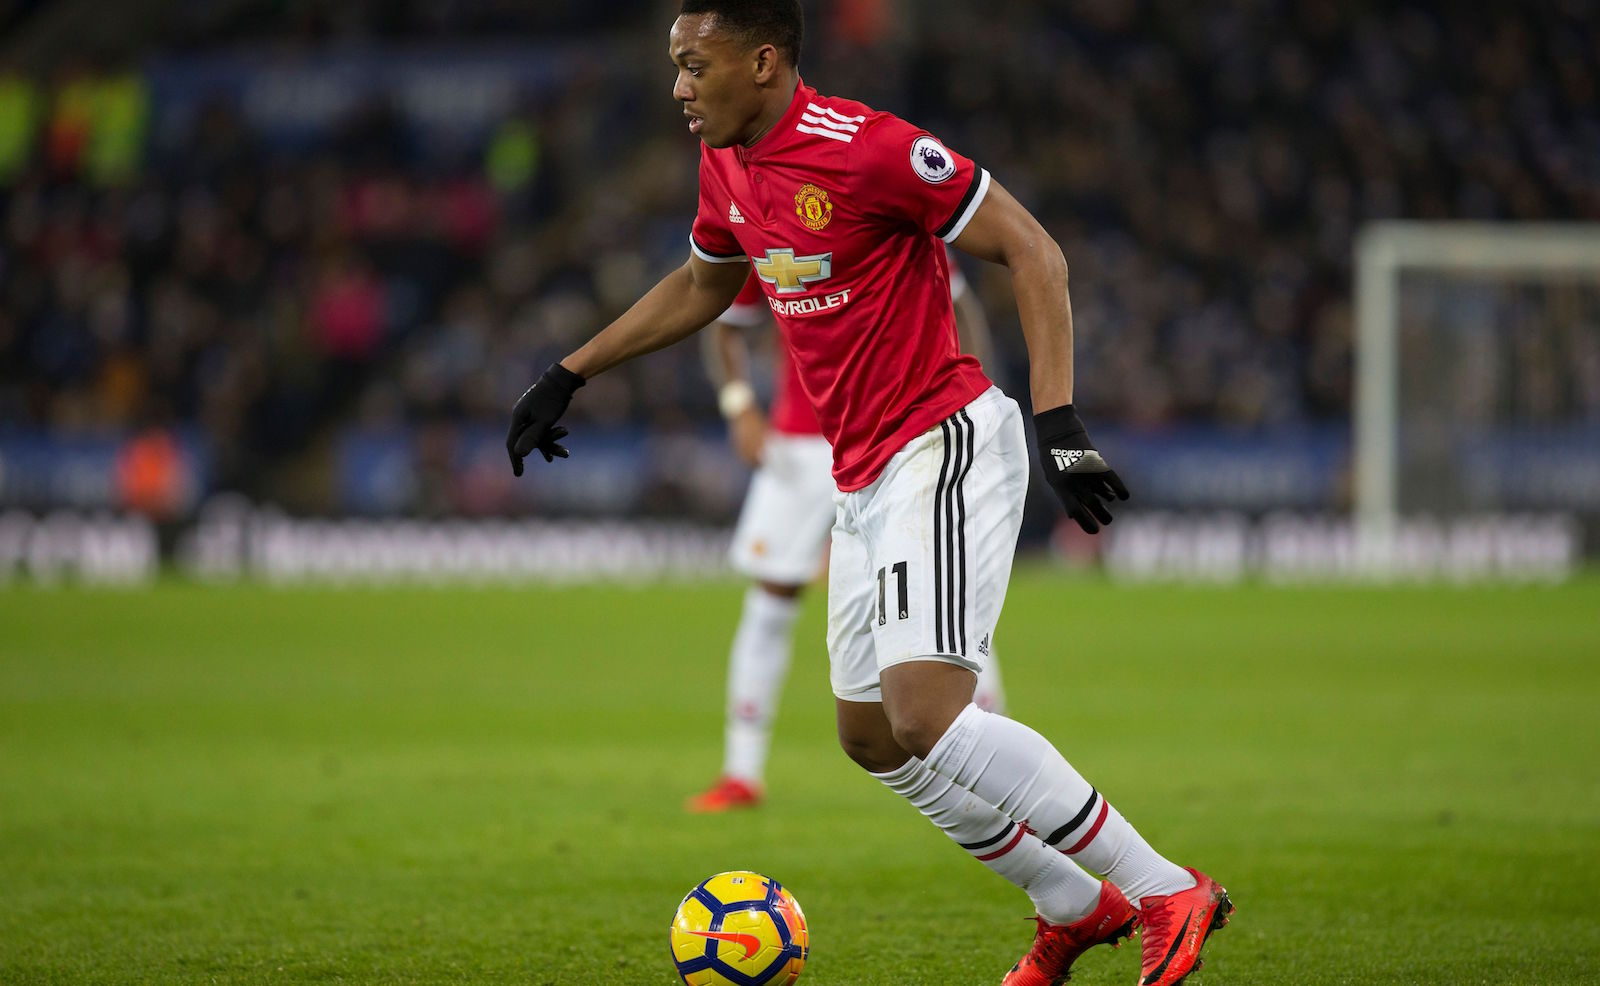 BBC confirm Anthony Martial has entered contract talks with Manchester United